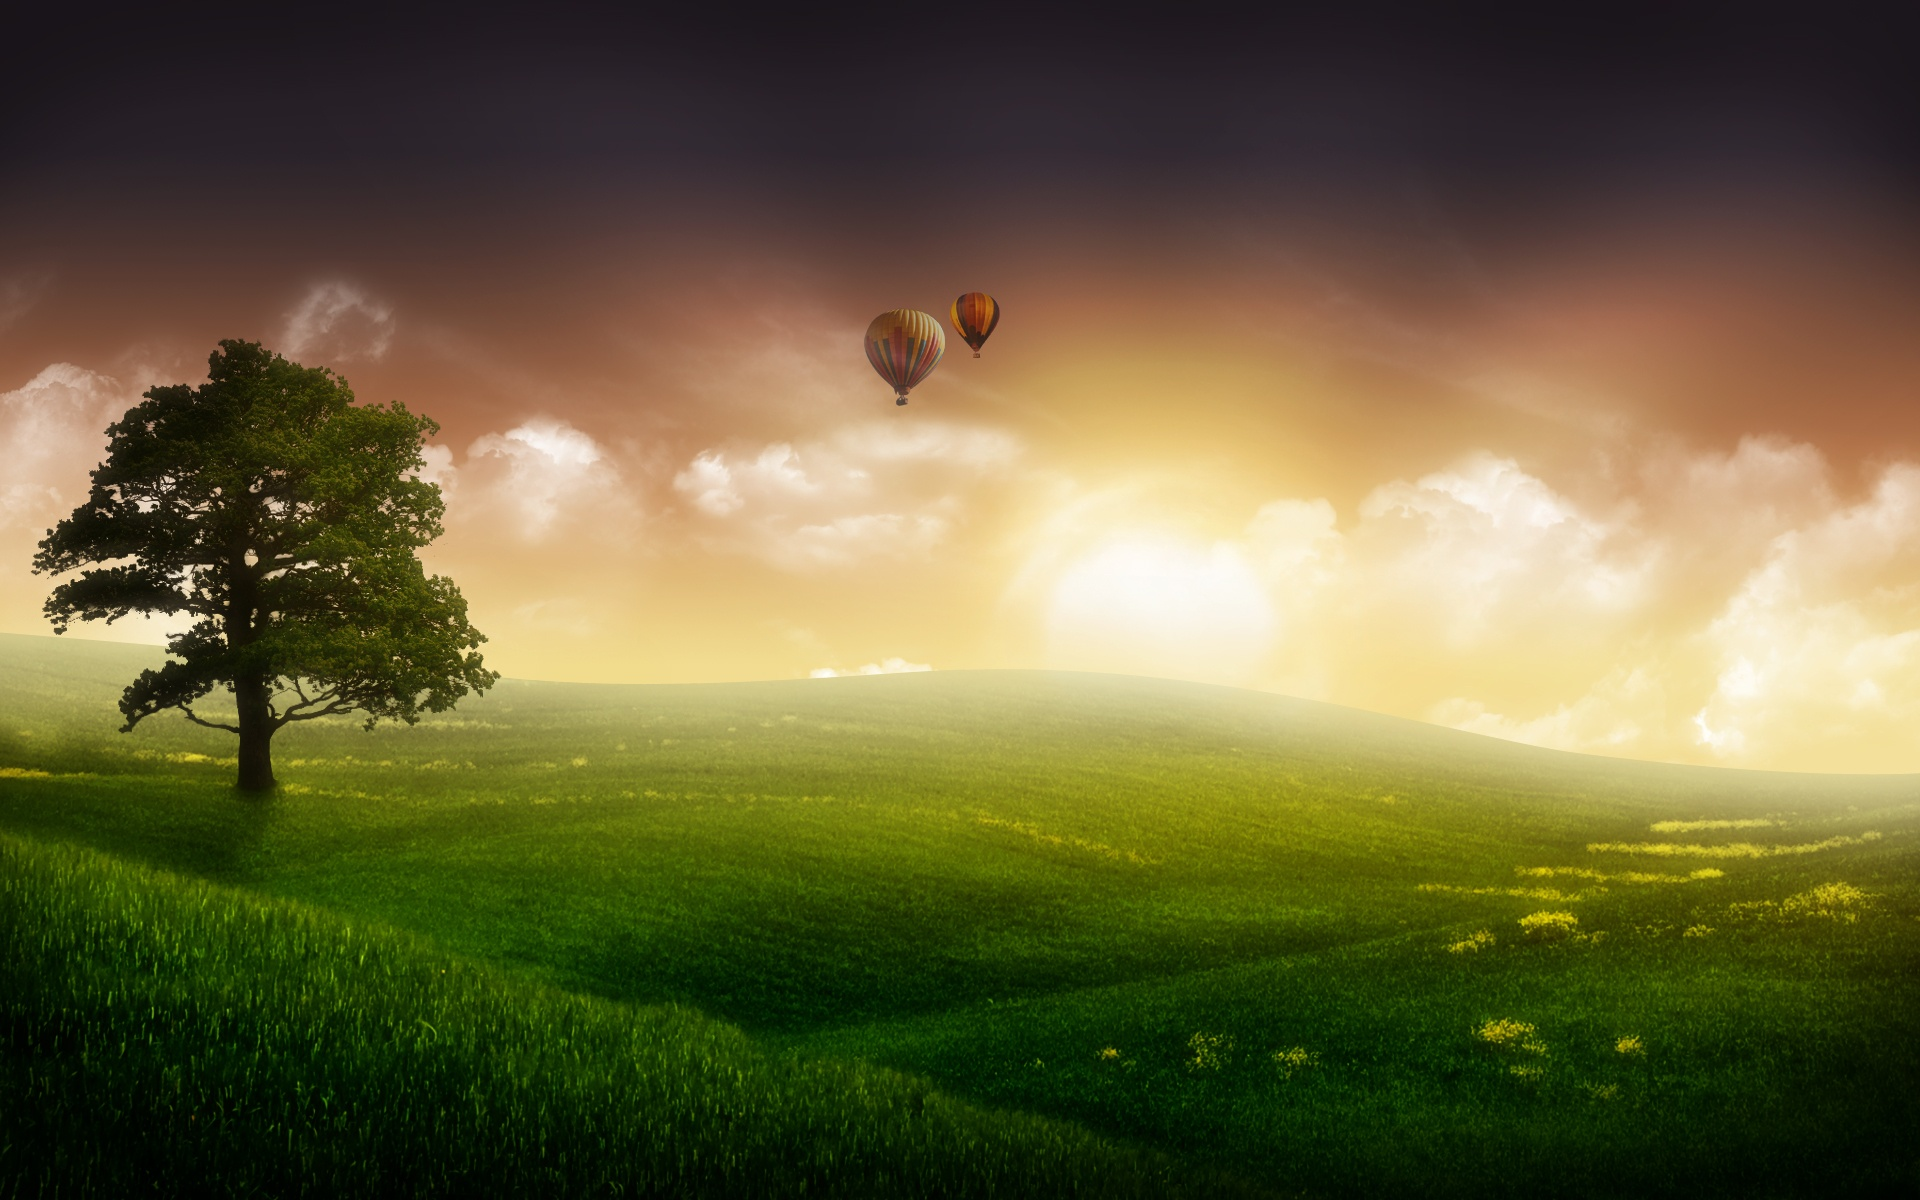 Nature Balloon Ride Wallpapers In Jpg Format For Free Download